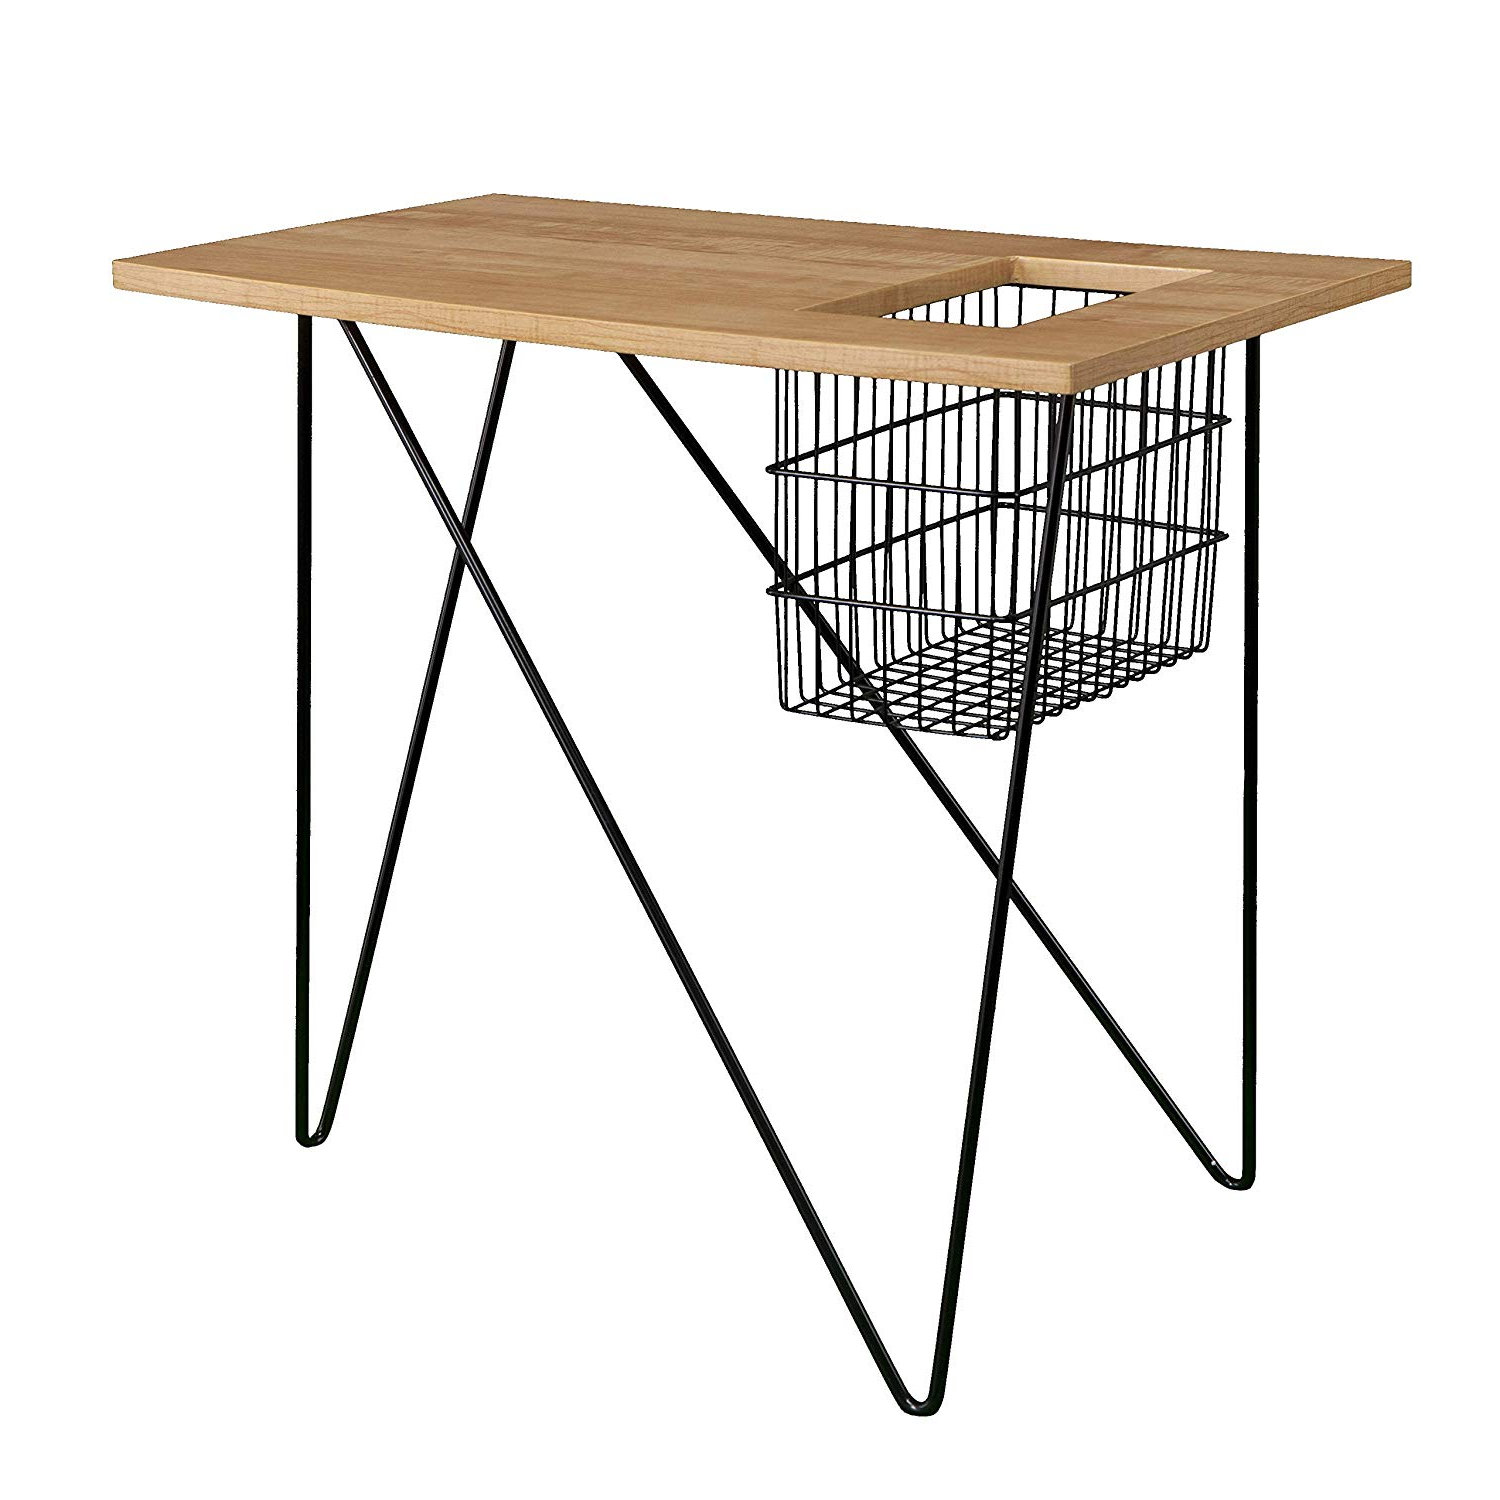 Most Popular Acacia Dining Tables With Black Rocket Legs Pertaining To Amazon: Southern Enterprises Amz6312co Nyda End Table (View 11 of 30)